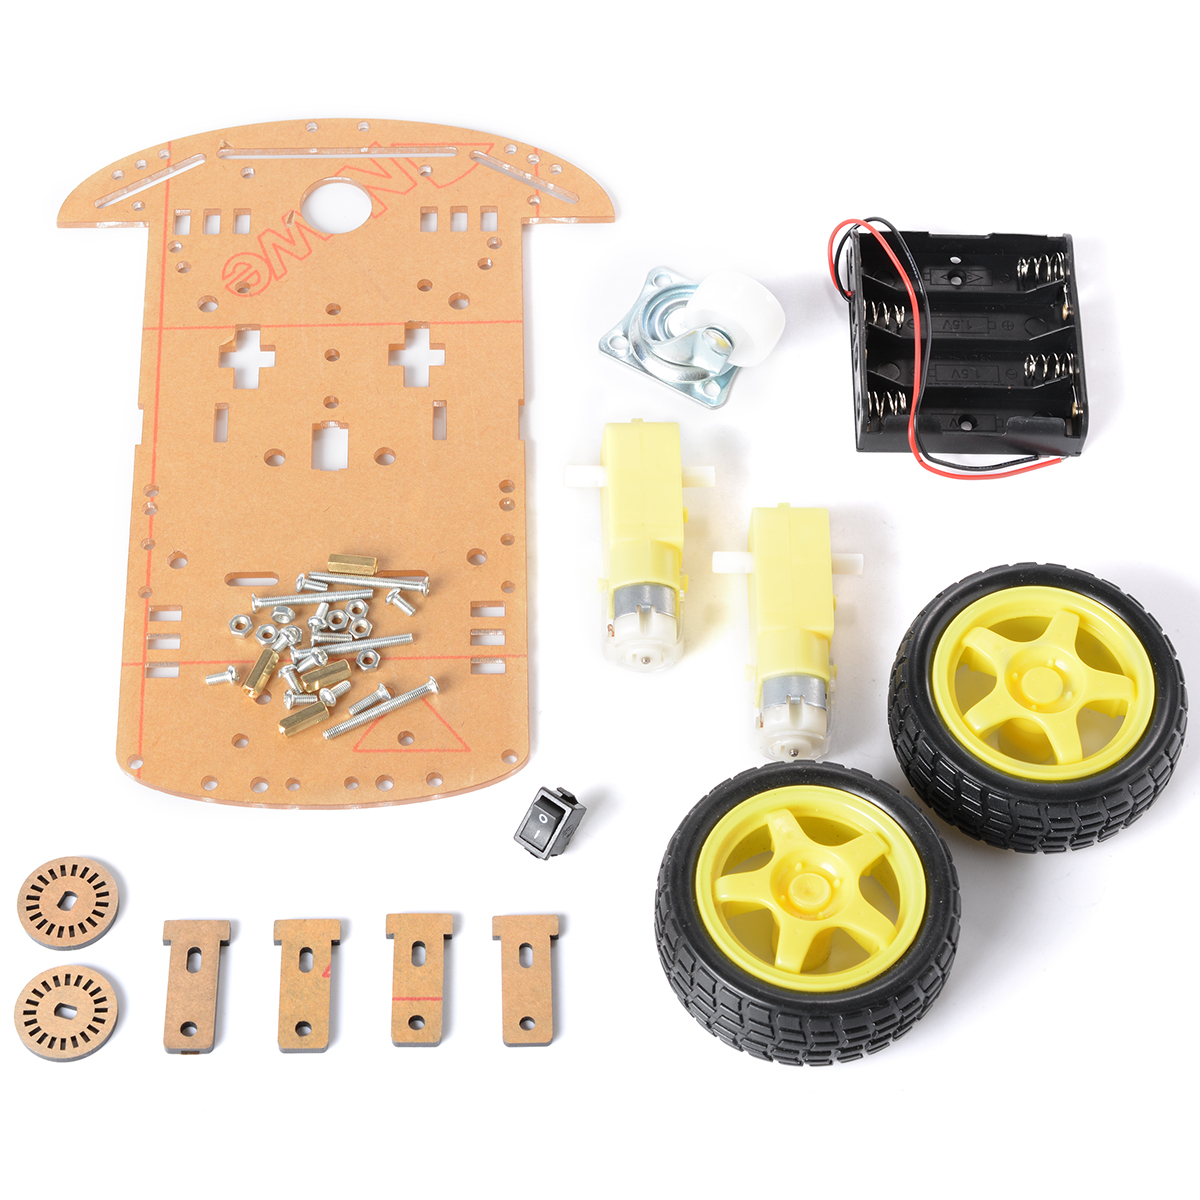 2WD Robot Car Chassis Kit For Arduino Raspberry Pi w/ Encoder and Battery Box TE160(China (Mainland))